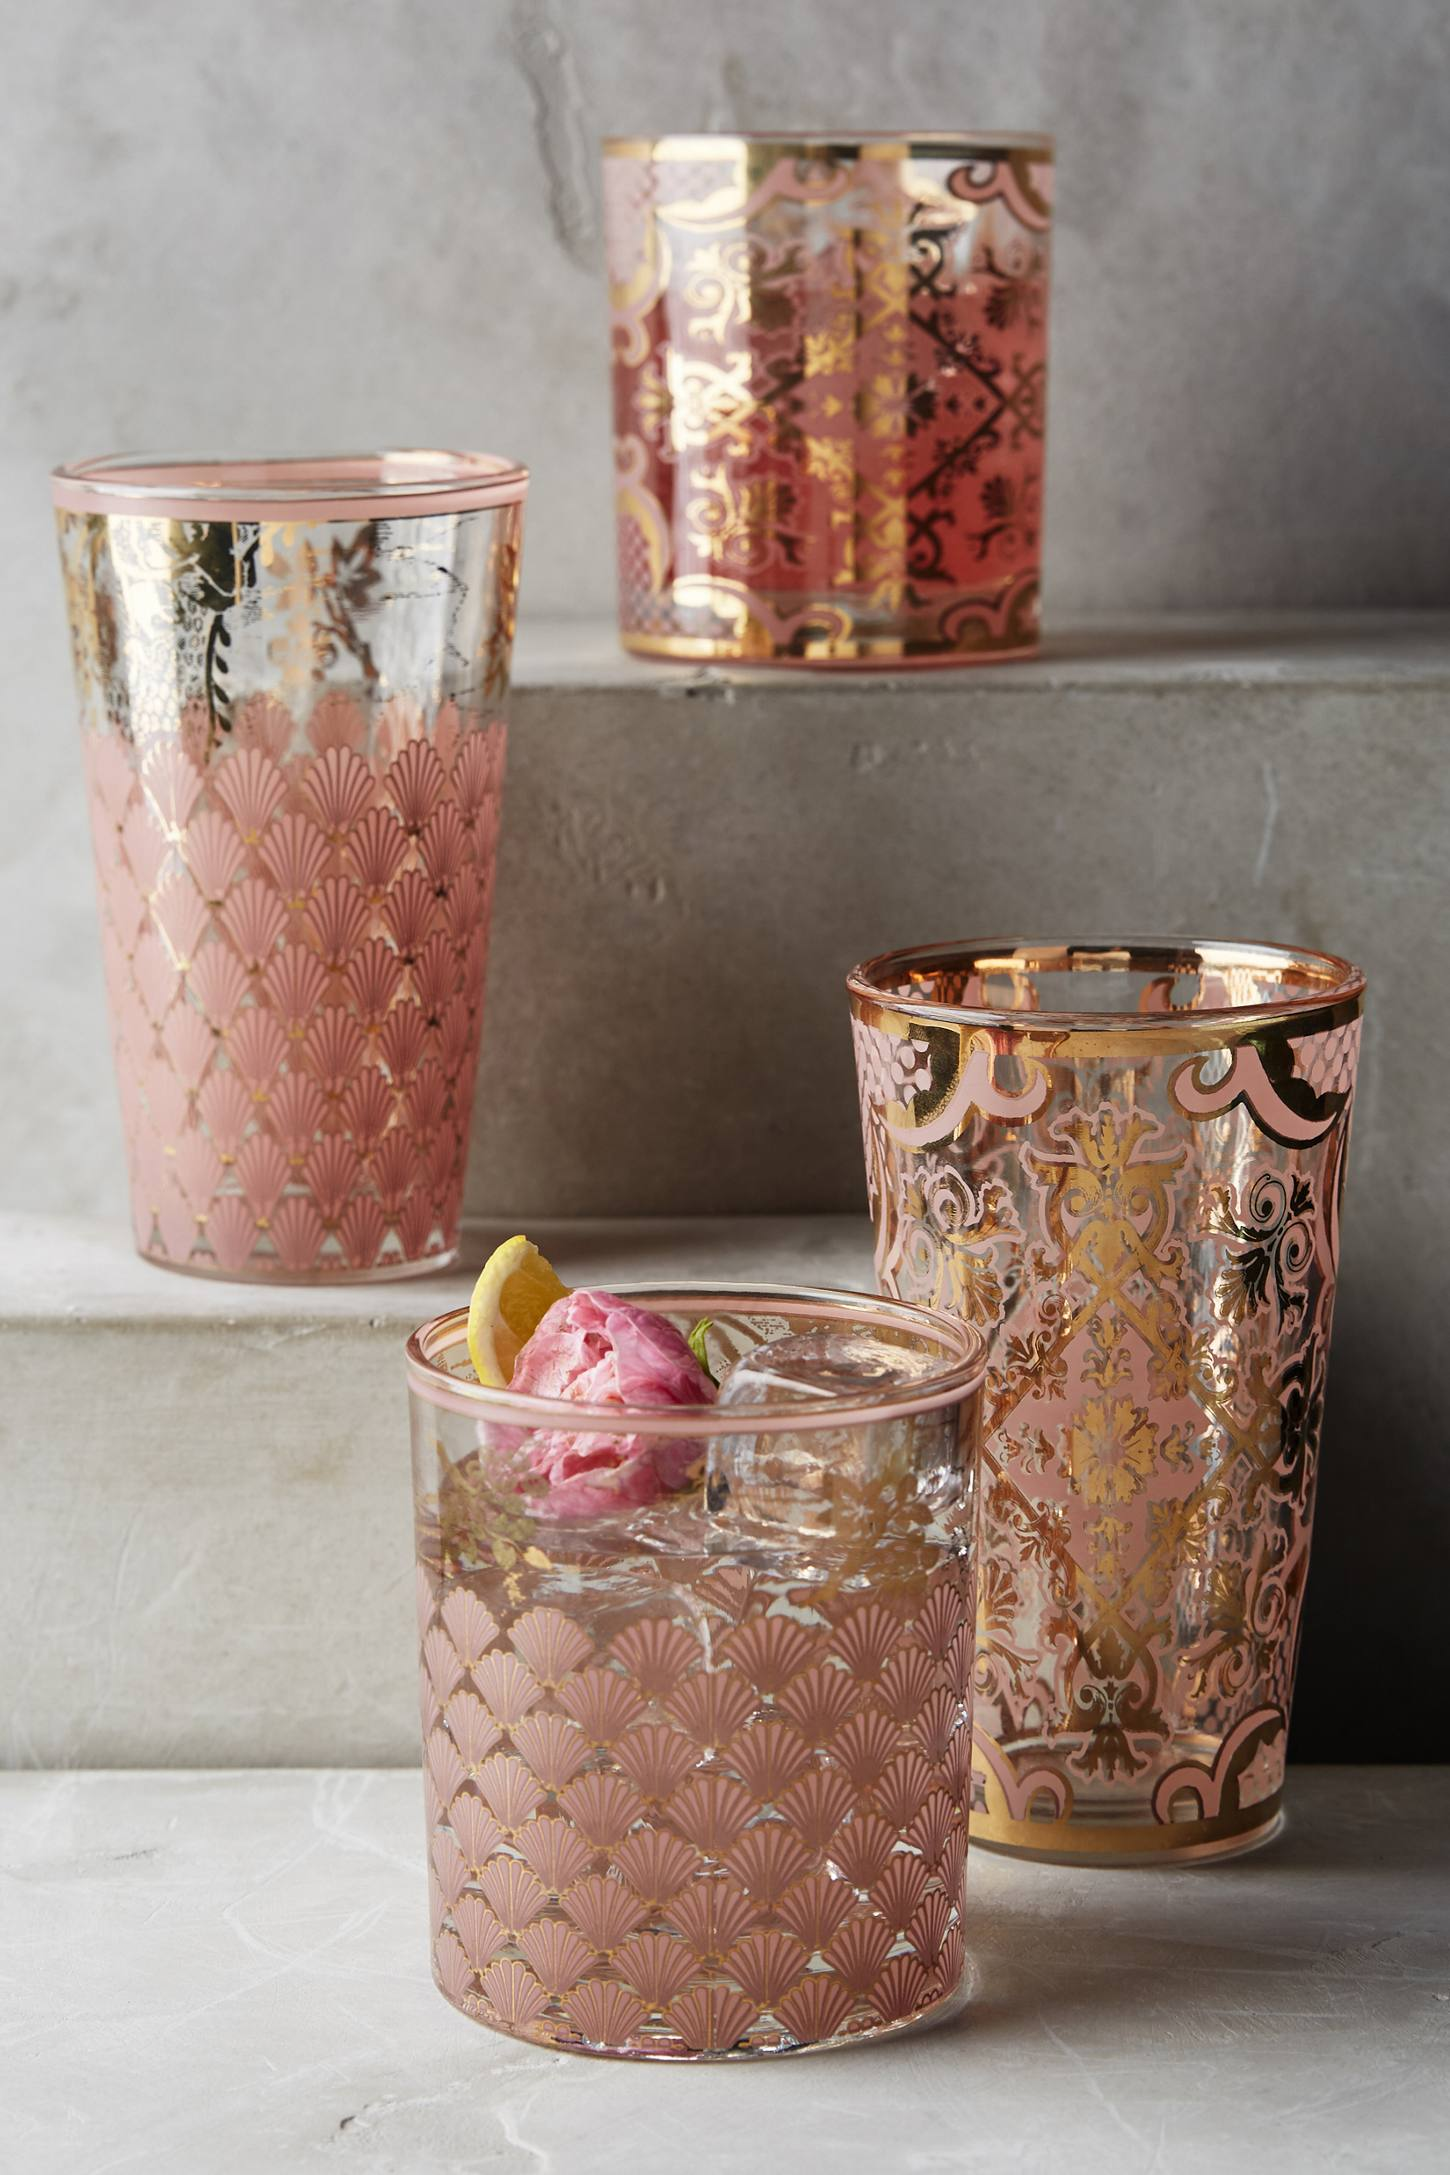 Patterned glassware from Anthropologie